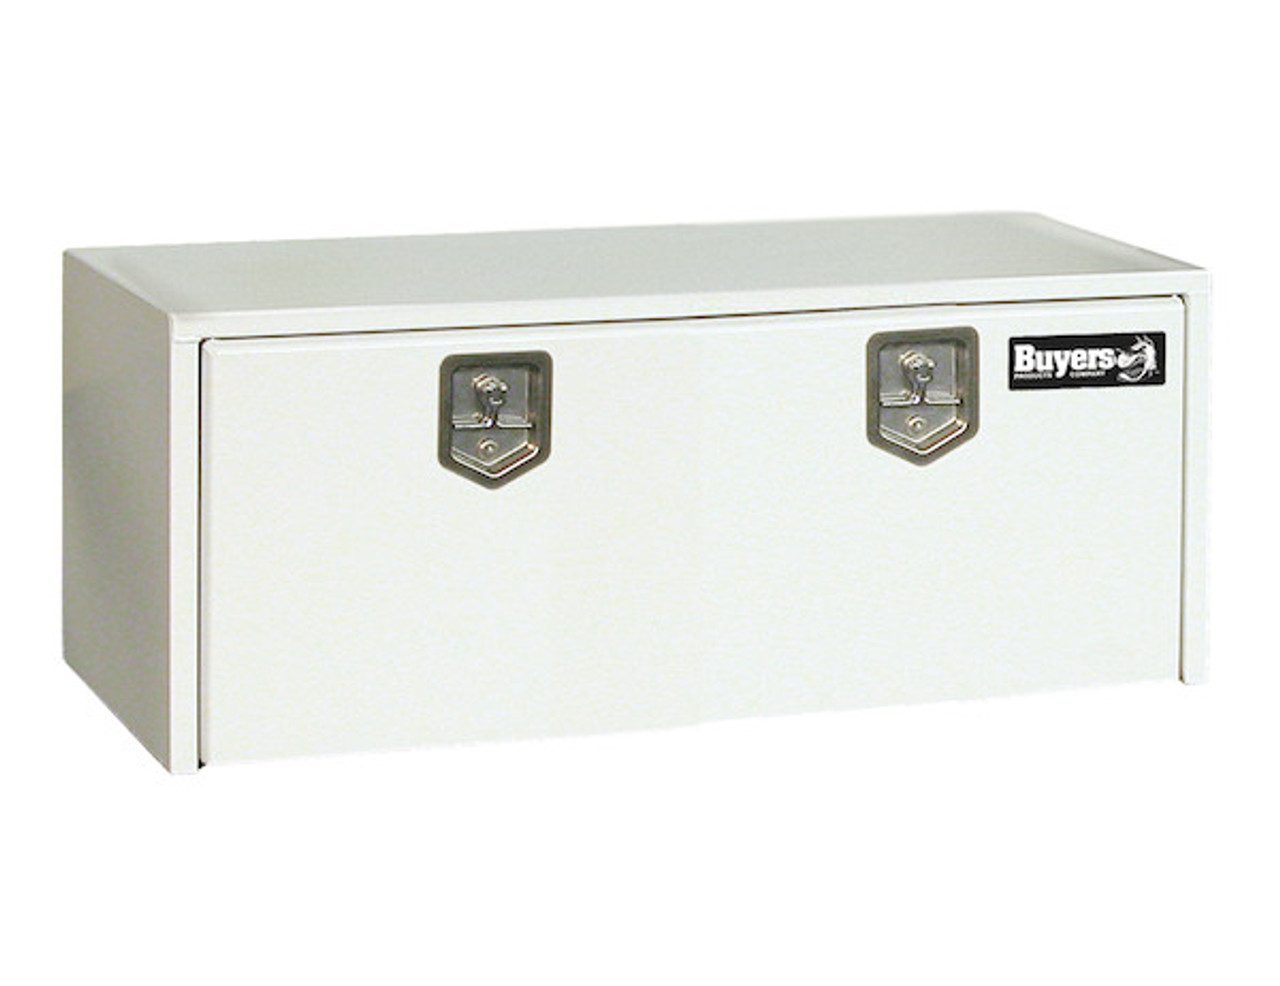 """1702410 BUYERS PRODUCTS WHITE STEEL UNDERBODY TRUCK BOX TOOLBOX 18""""HX18""""DX48""""W"""